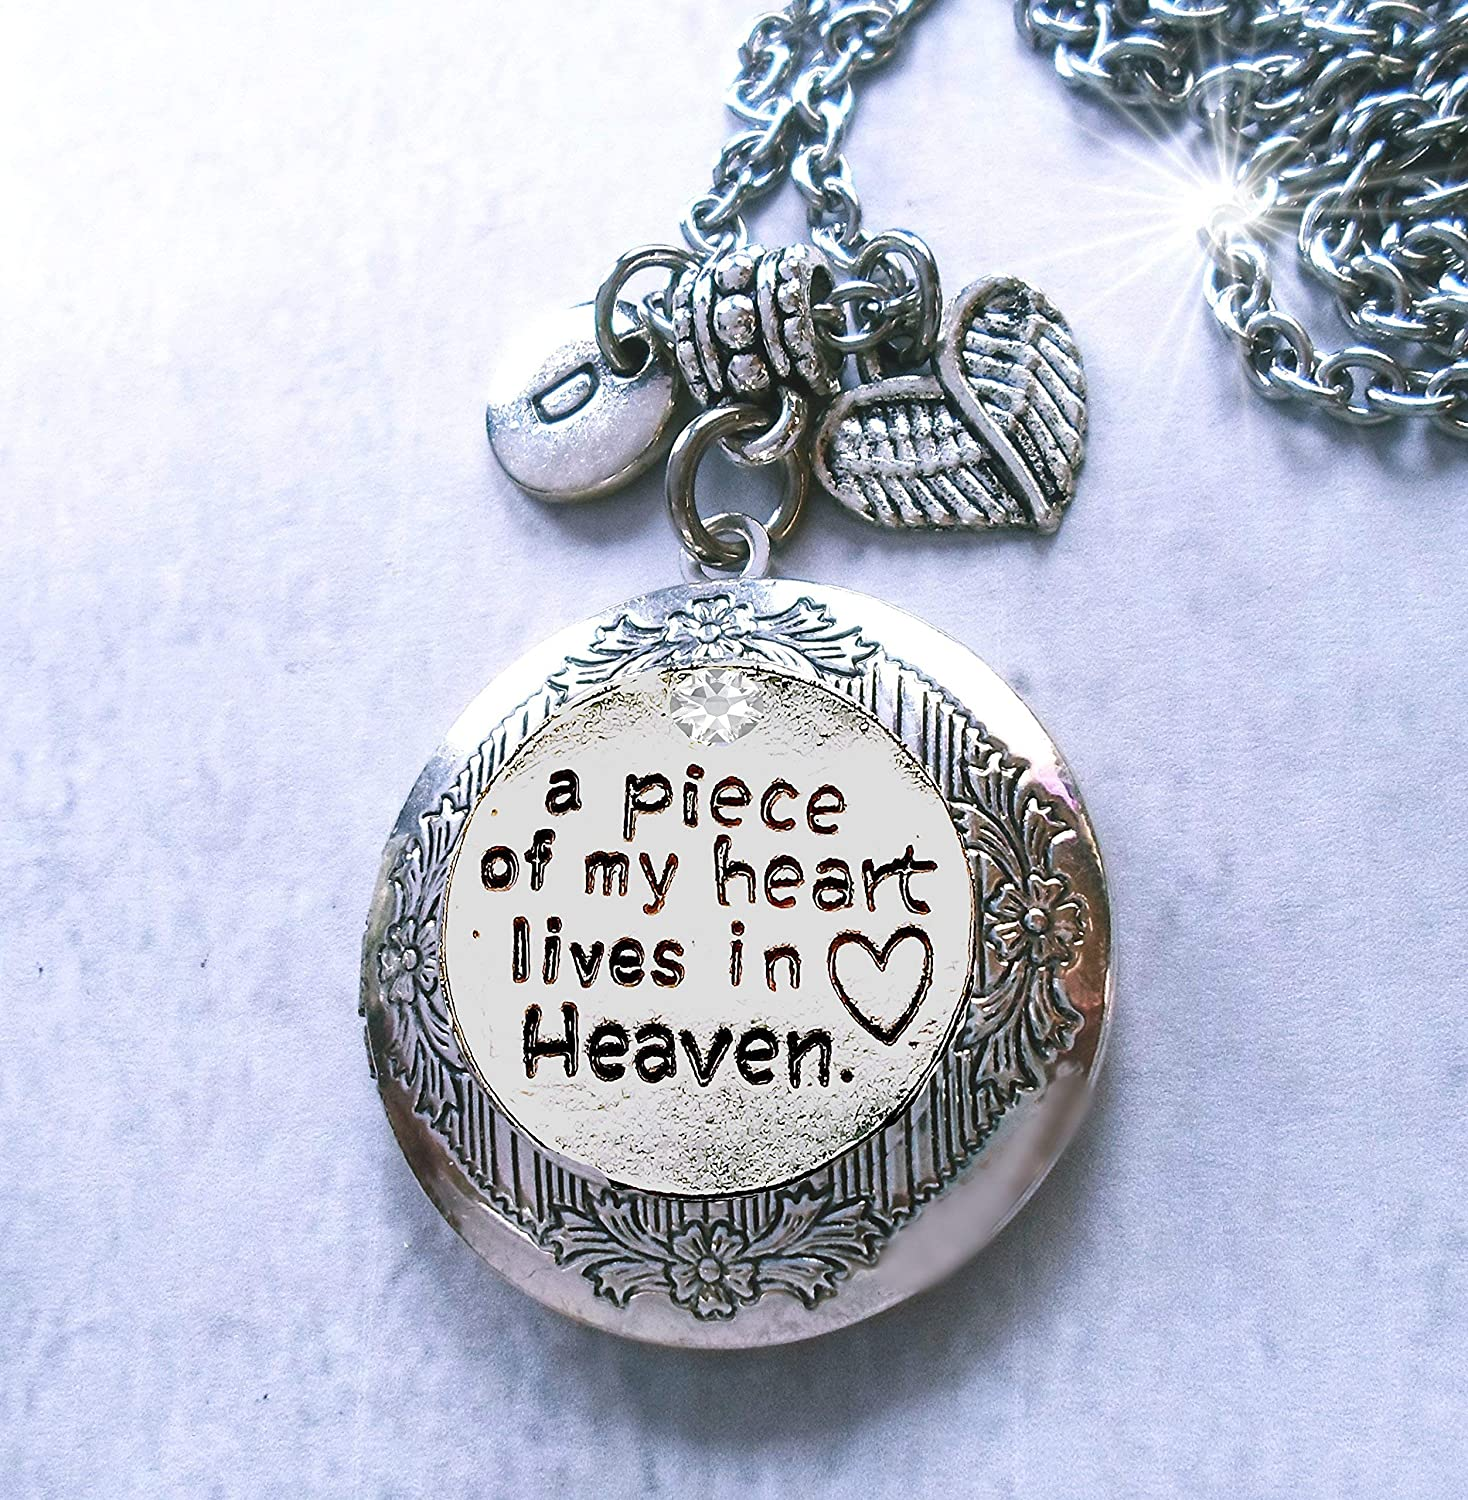 A Piece of my Heart is in Heaven made with Swarovski Crystal Heart Necklace